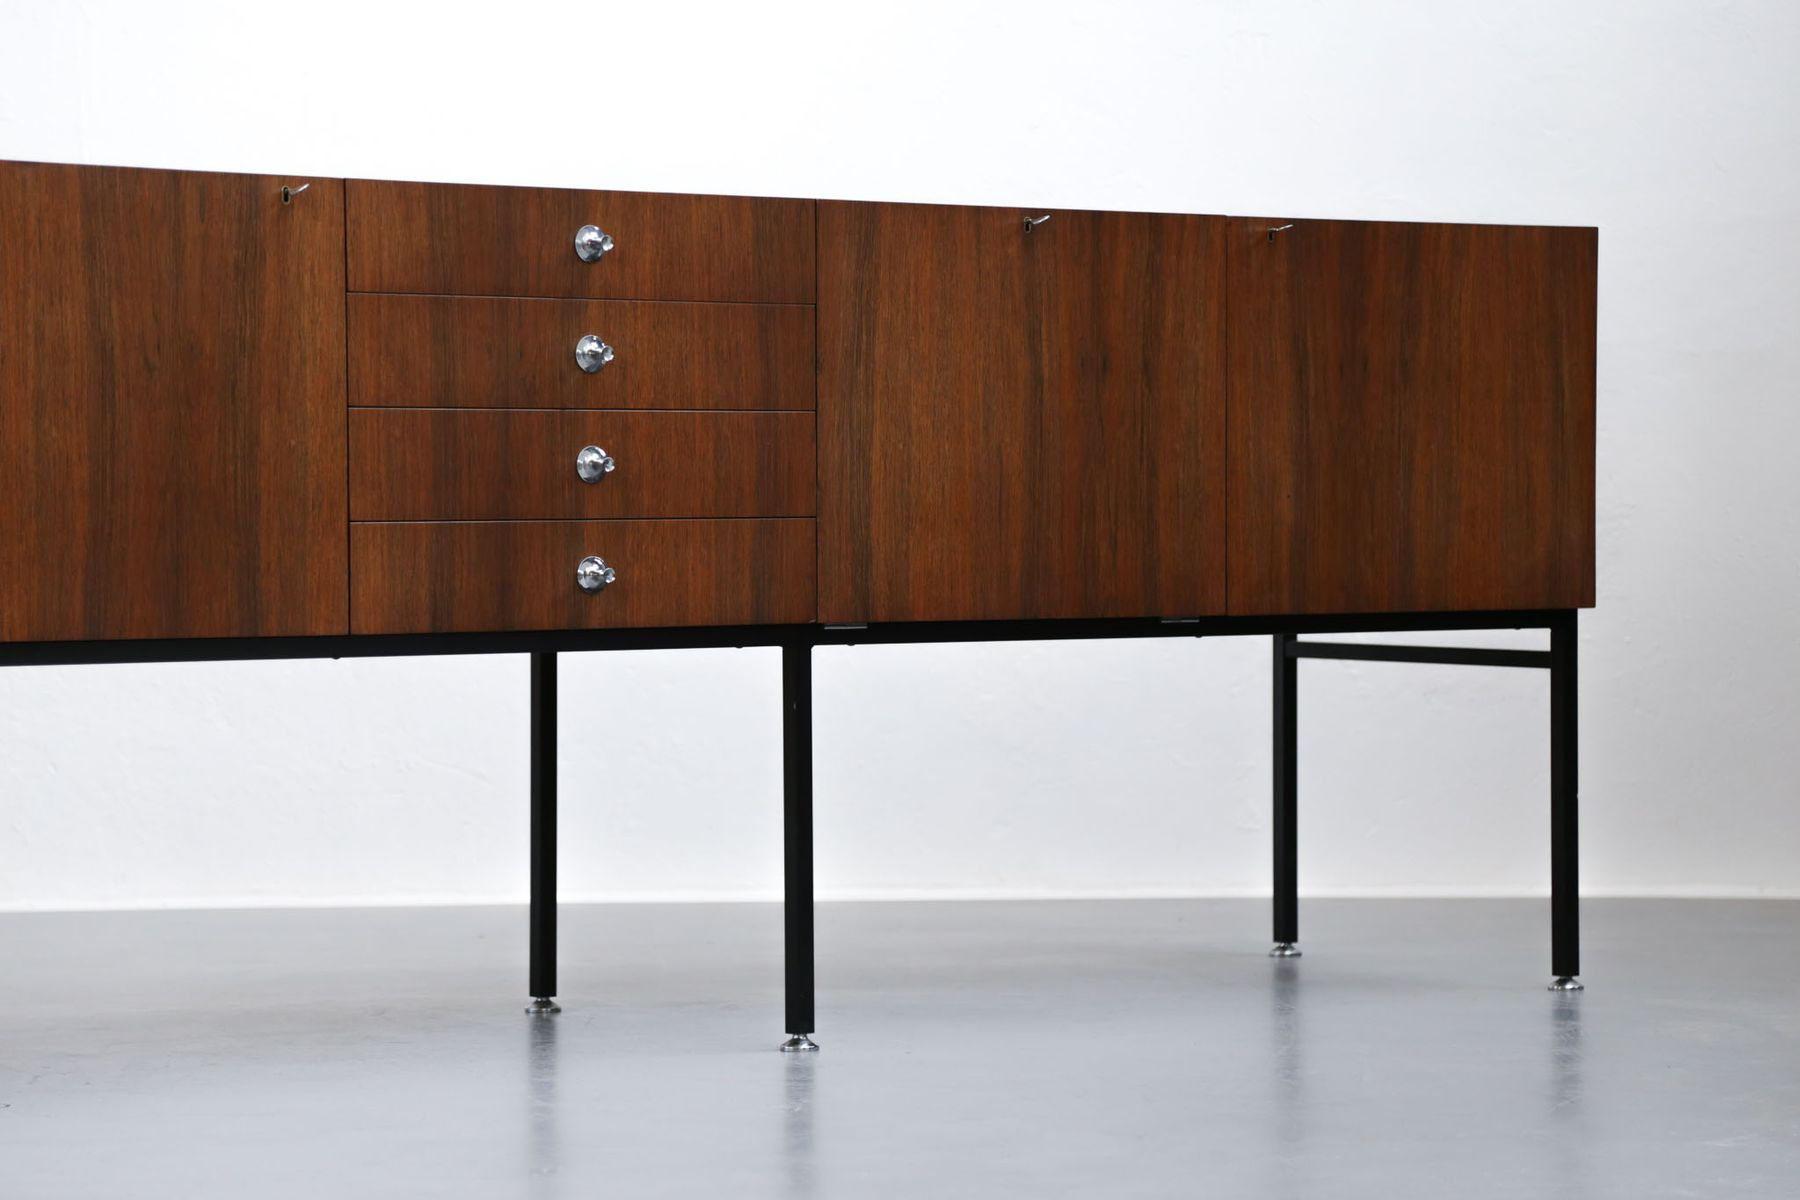 vintage french sideboard by alain richard for meubles tv for sale at pamono. Black Bedroom Furniture Sets. Home Design Ideas